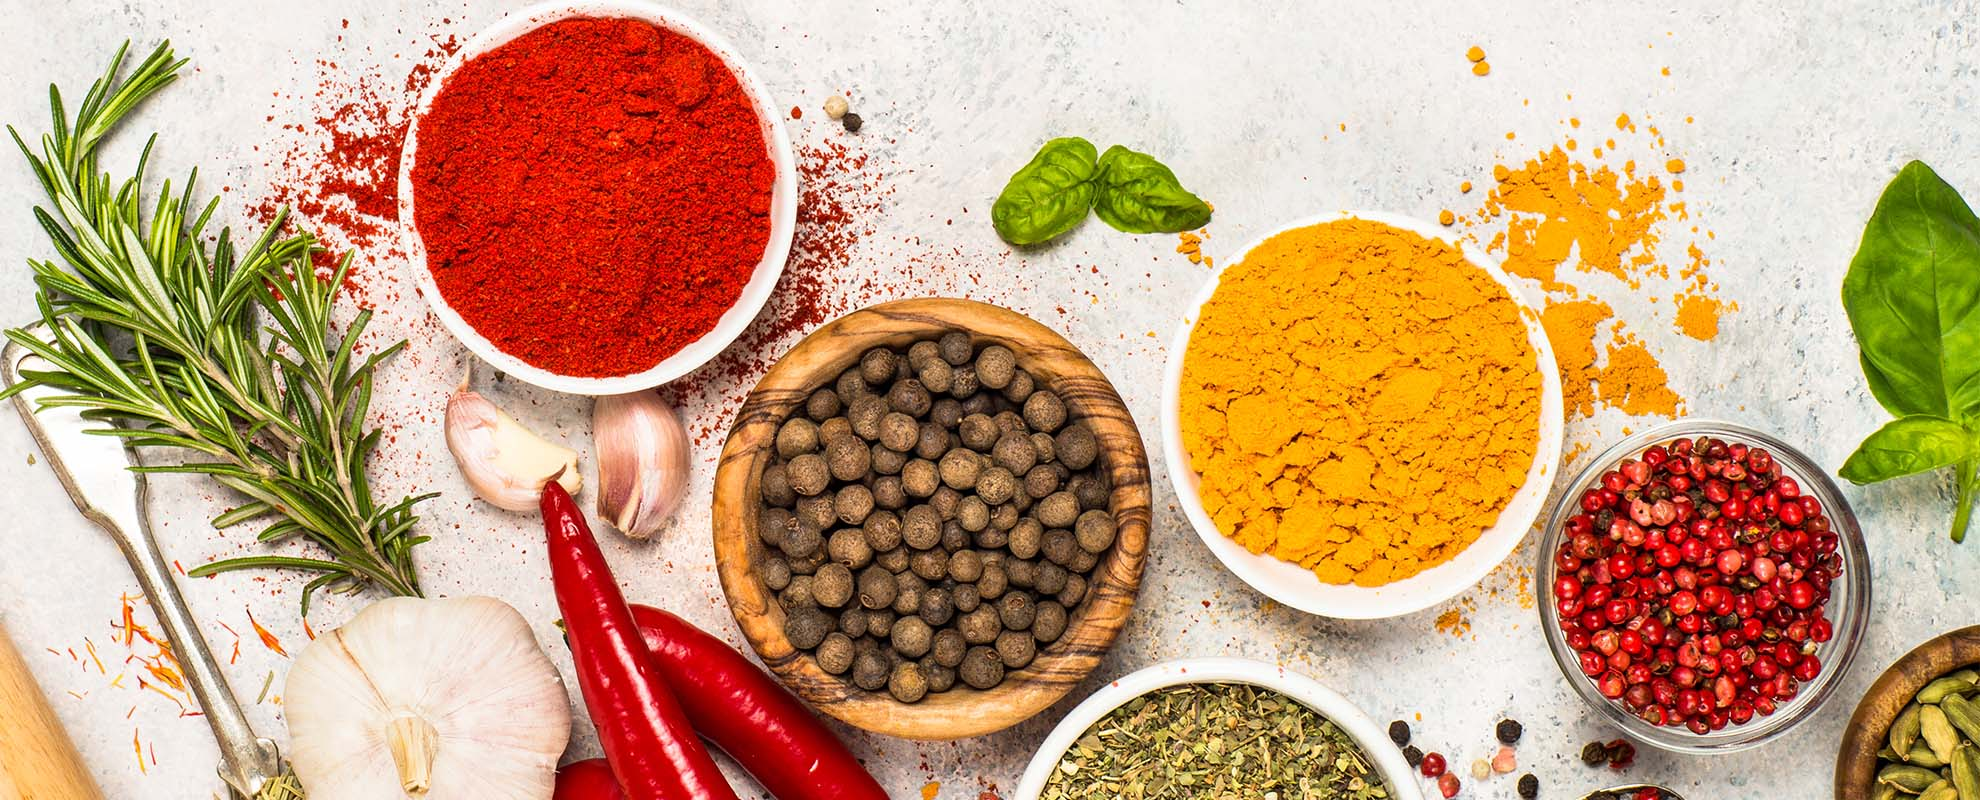 Alavi - Set of various spices and herbs